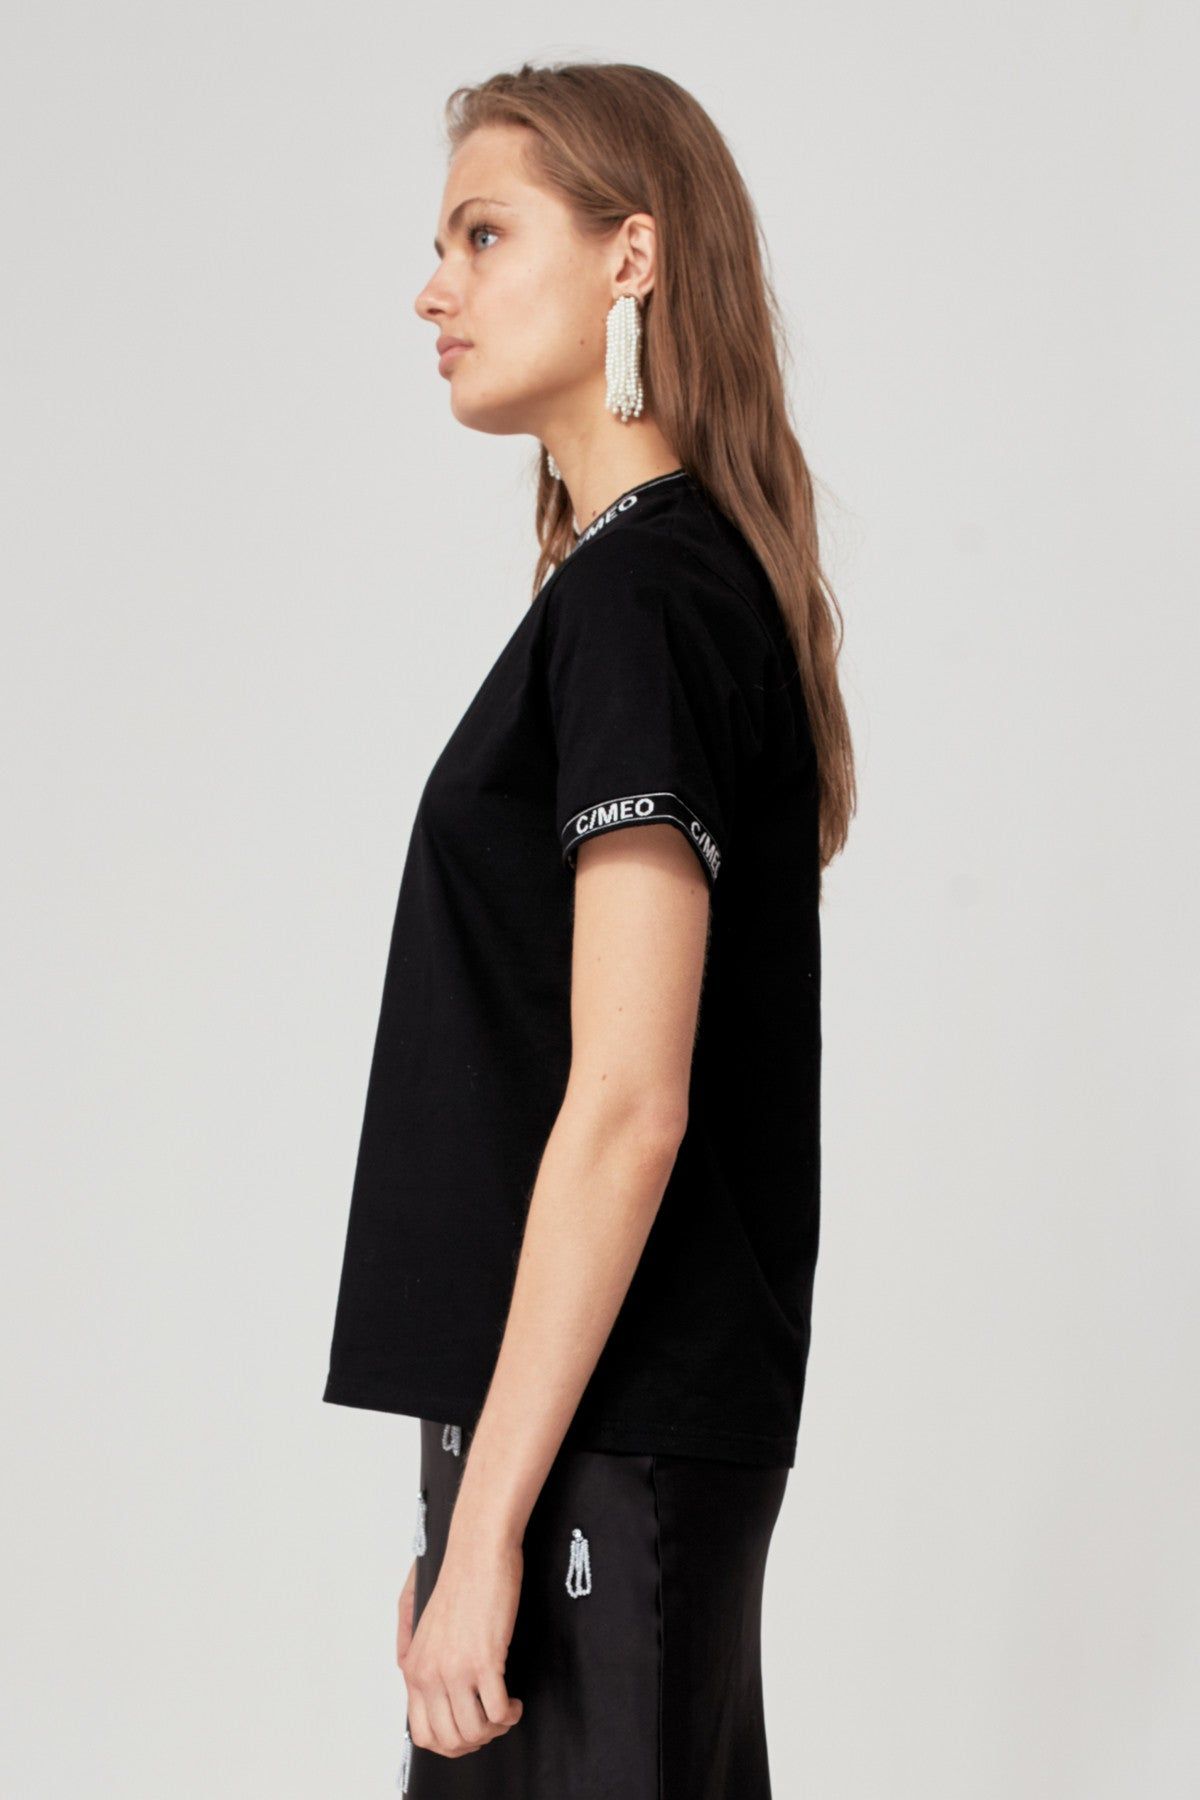 EPISODE T-SHIRT black w ivory